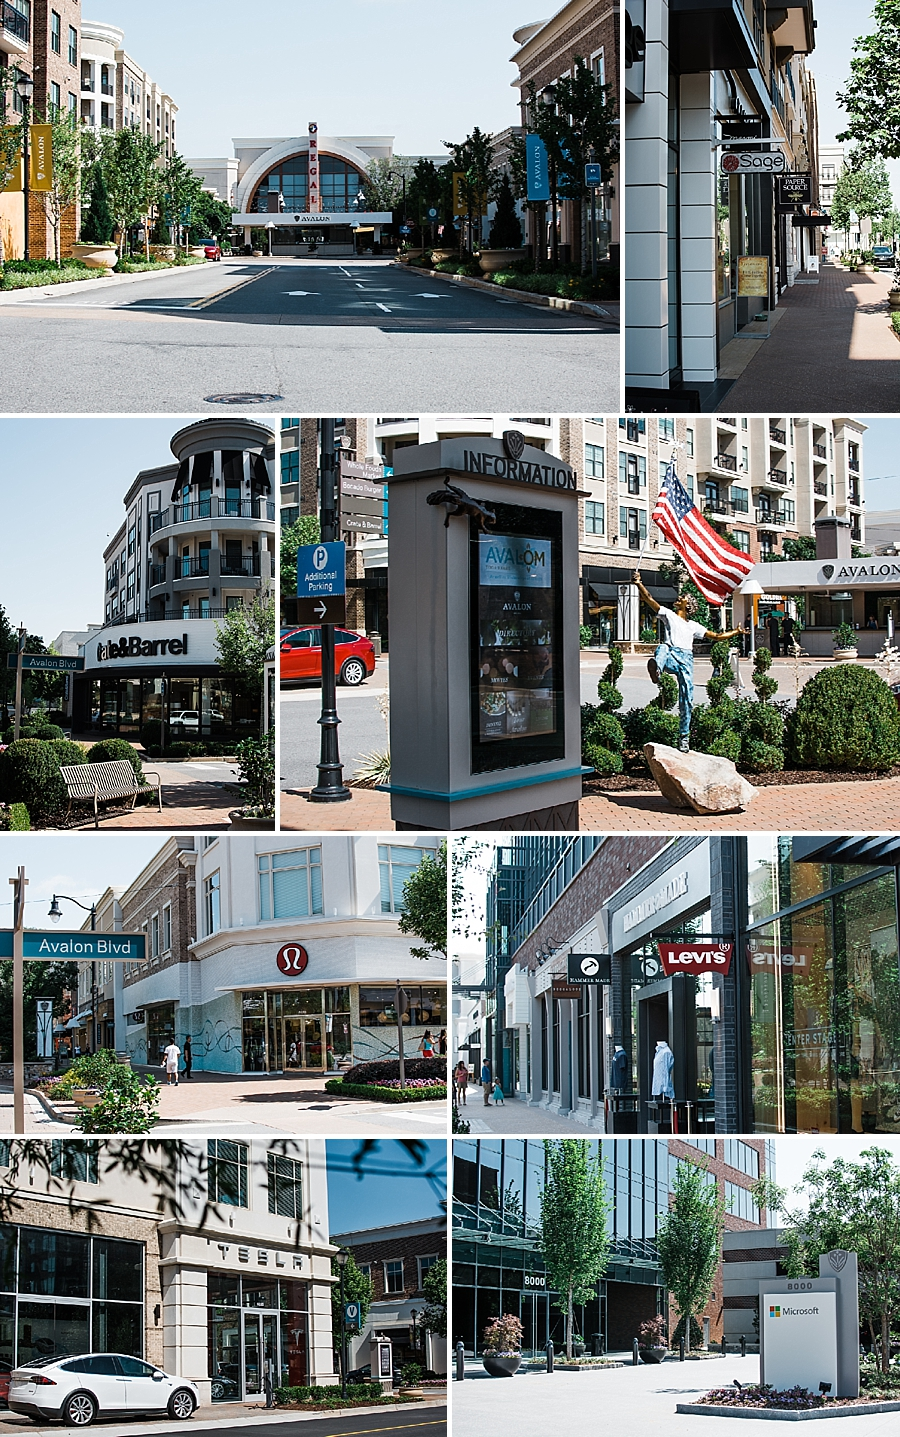 Upscale Shopping, Dining and Entertaining at Avalon